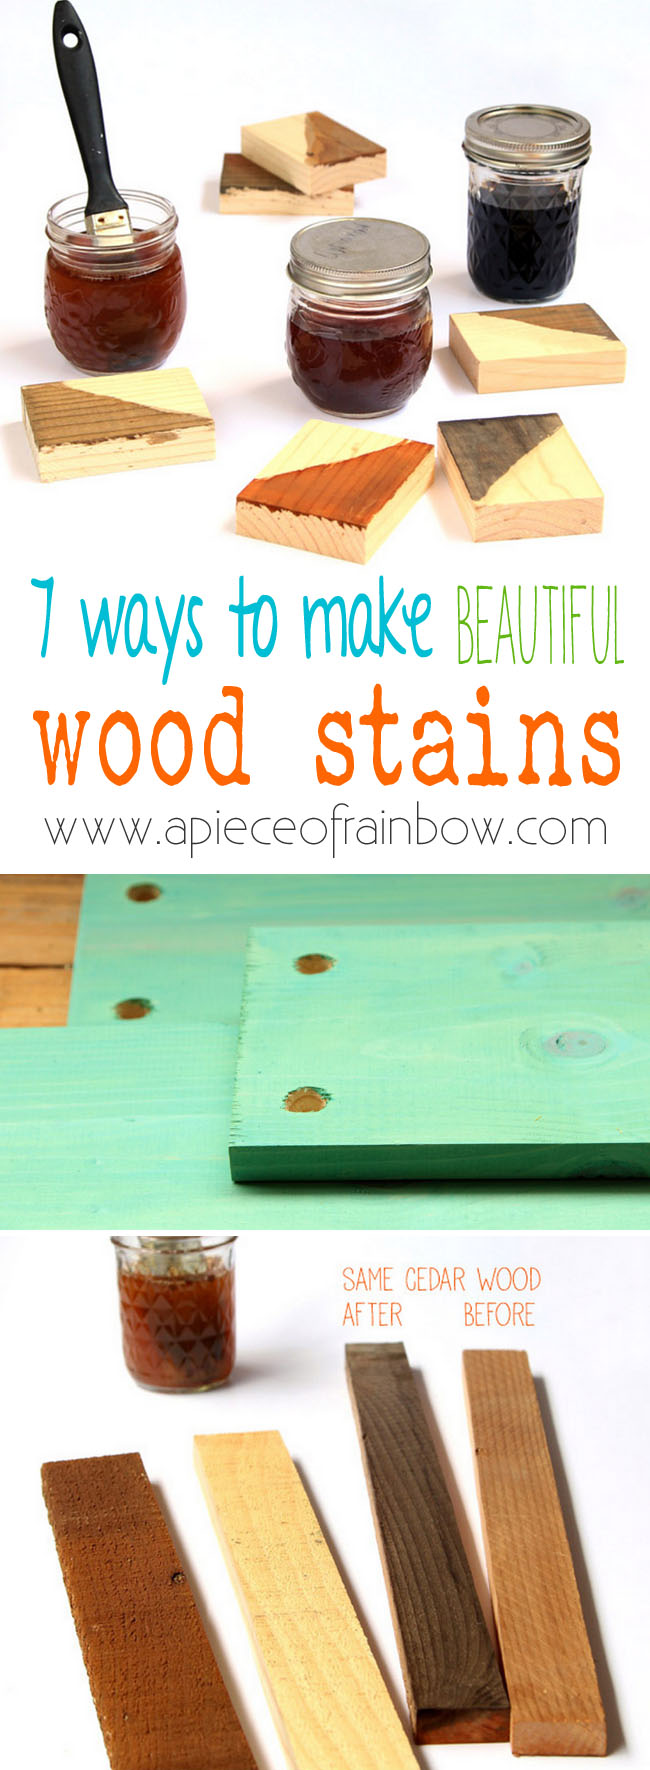 home-made-wood-stains-apieceofrainbowblog1